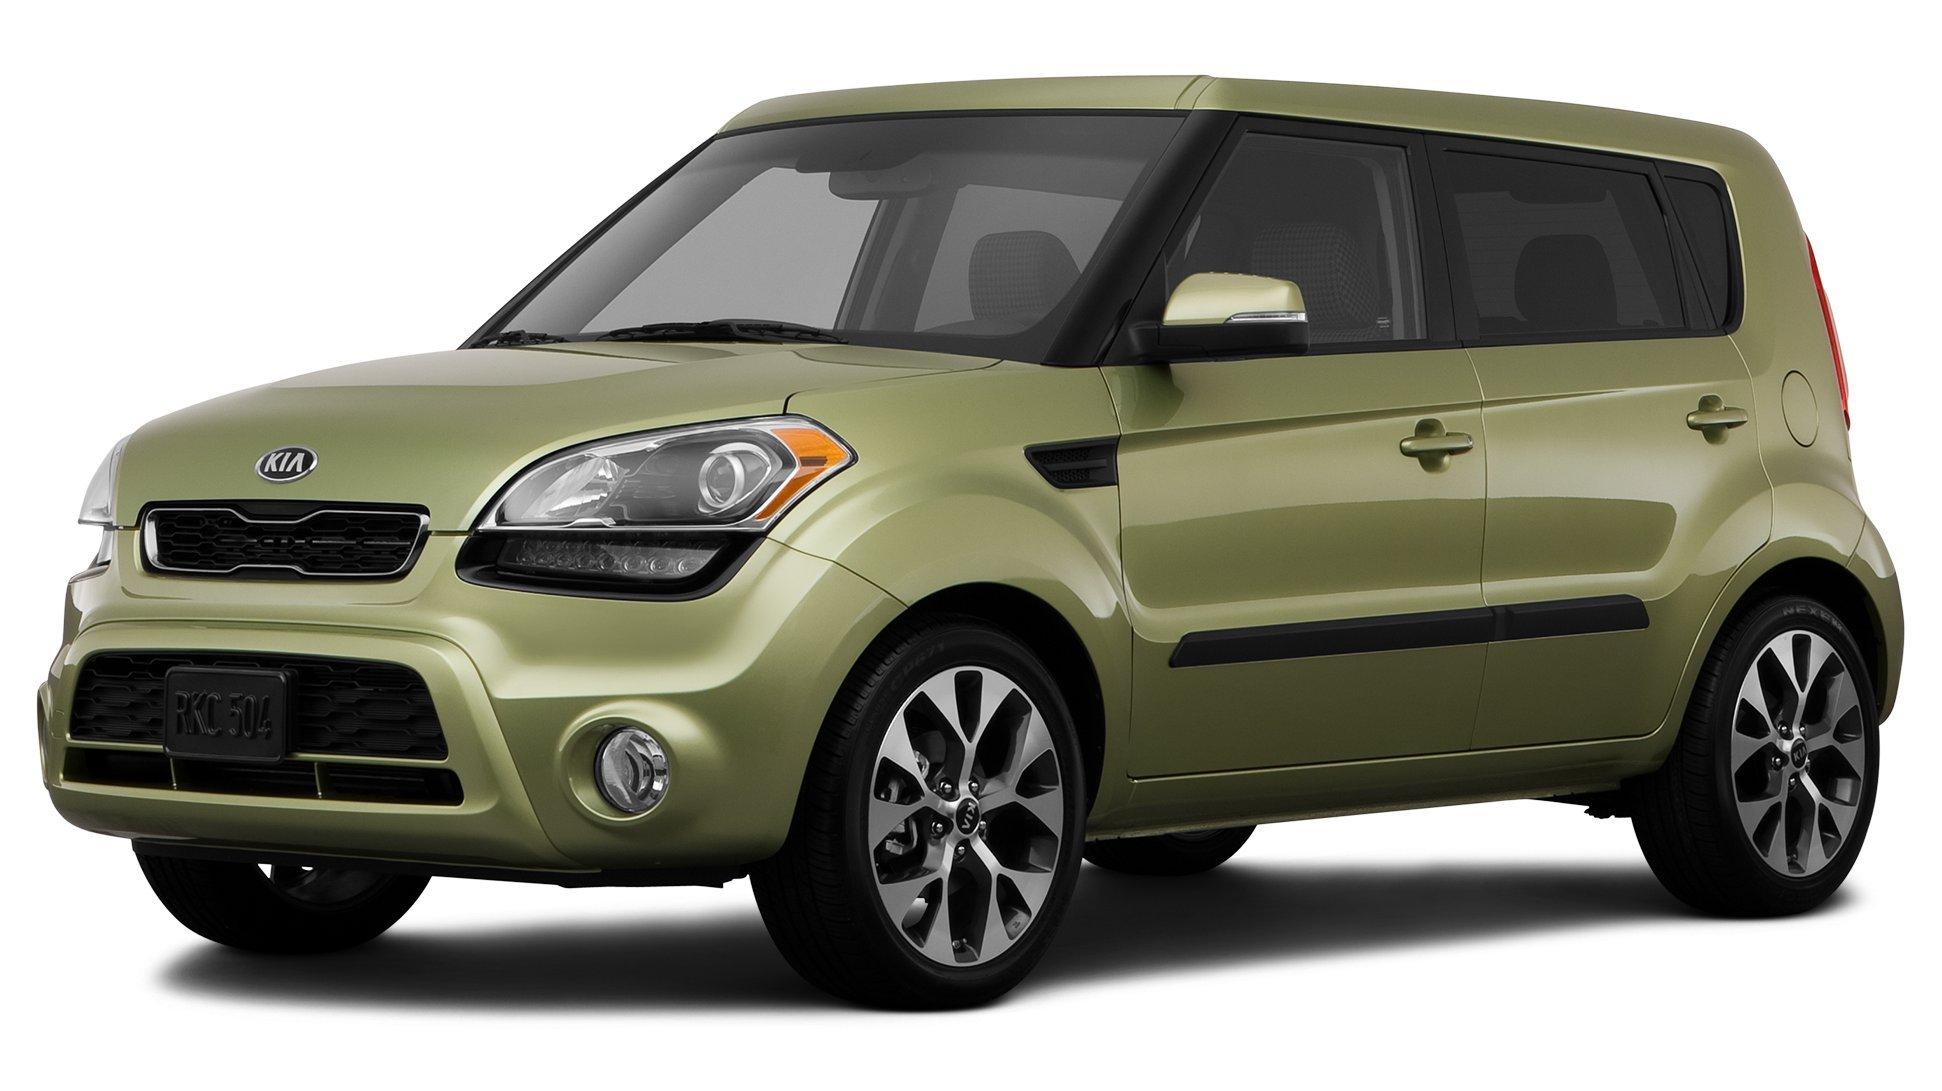 2013 Honda Fit, 5-Door Hatchback Automatic Transmission, 2013 Kia Soul  Base, 5-Door Wagon Automatic Transmission ...